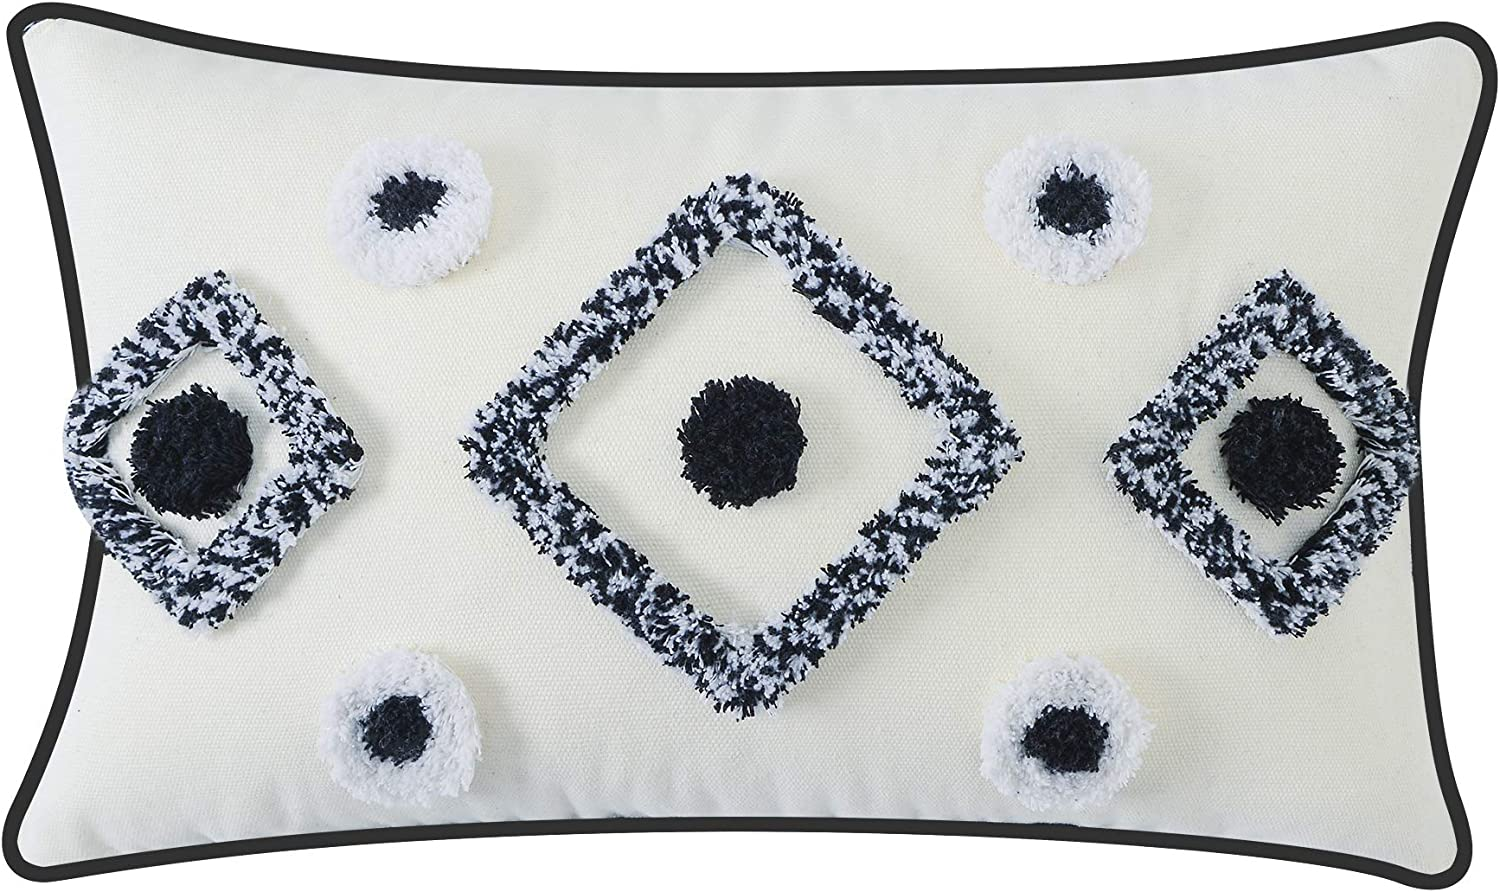 HPUK Boho Decorative Throw Pillow Cover Cotton Woven Tufted Pillows Cover Lumbar Monochrome Accent Cushion Case for Couch Sofa Chair Living Room Bedroom, 12x20, White